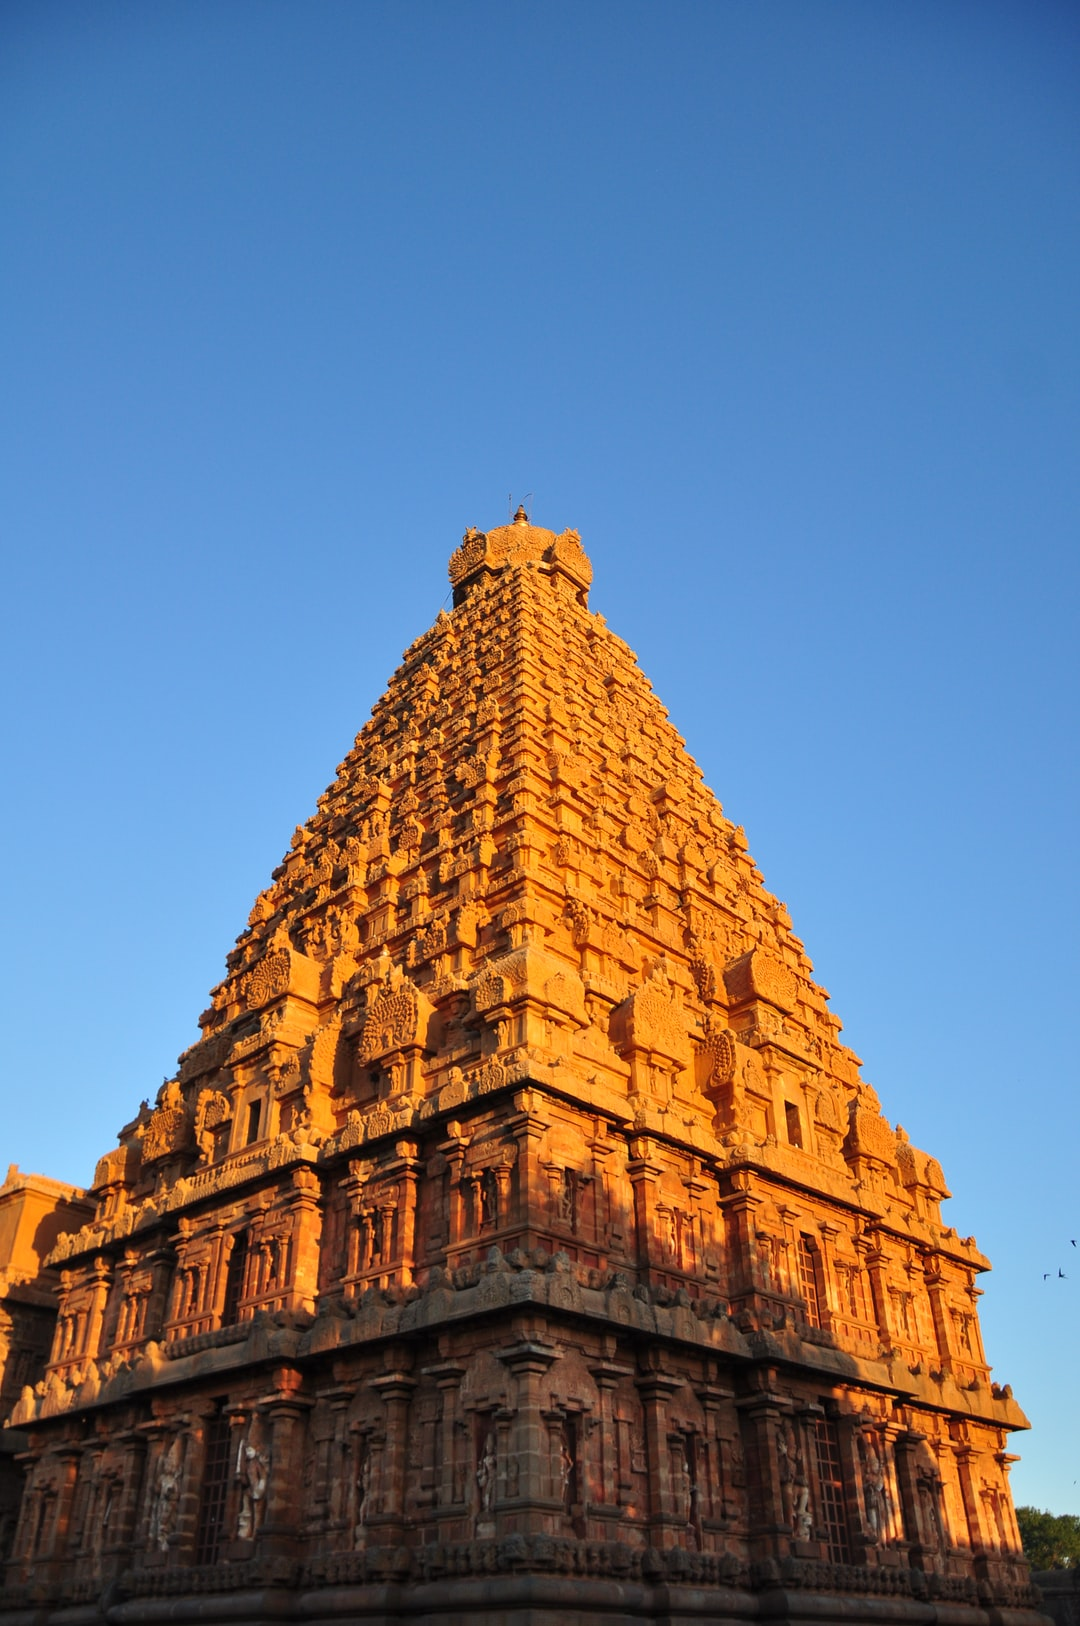 """Brihadishvara Temple, also called Rajarajesvaram or Peruvudaiyār Kōvil, is a Hindu temple dedicated to Shiva located in South bank of Kaveri river in Thanjavur, Tamil Nadu, India.[1][3] It is one of the largest South Indian temples and an exemplary example of a fully realized Dravidian architecture.[4] It is called as Dhakshina Meru (Meru of south).[5] Built by Tamil king Raja Raja Chola I between 1003 and 1010 AD, the temple is a part of the UNESCO World Heritage Site known as the """"Great Living Chola Temples"""","""